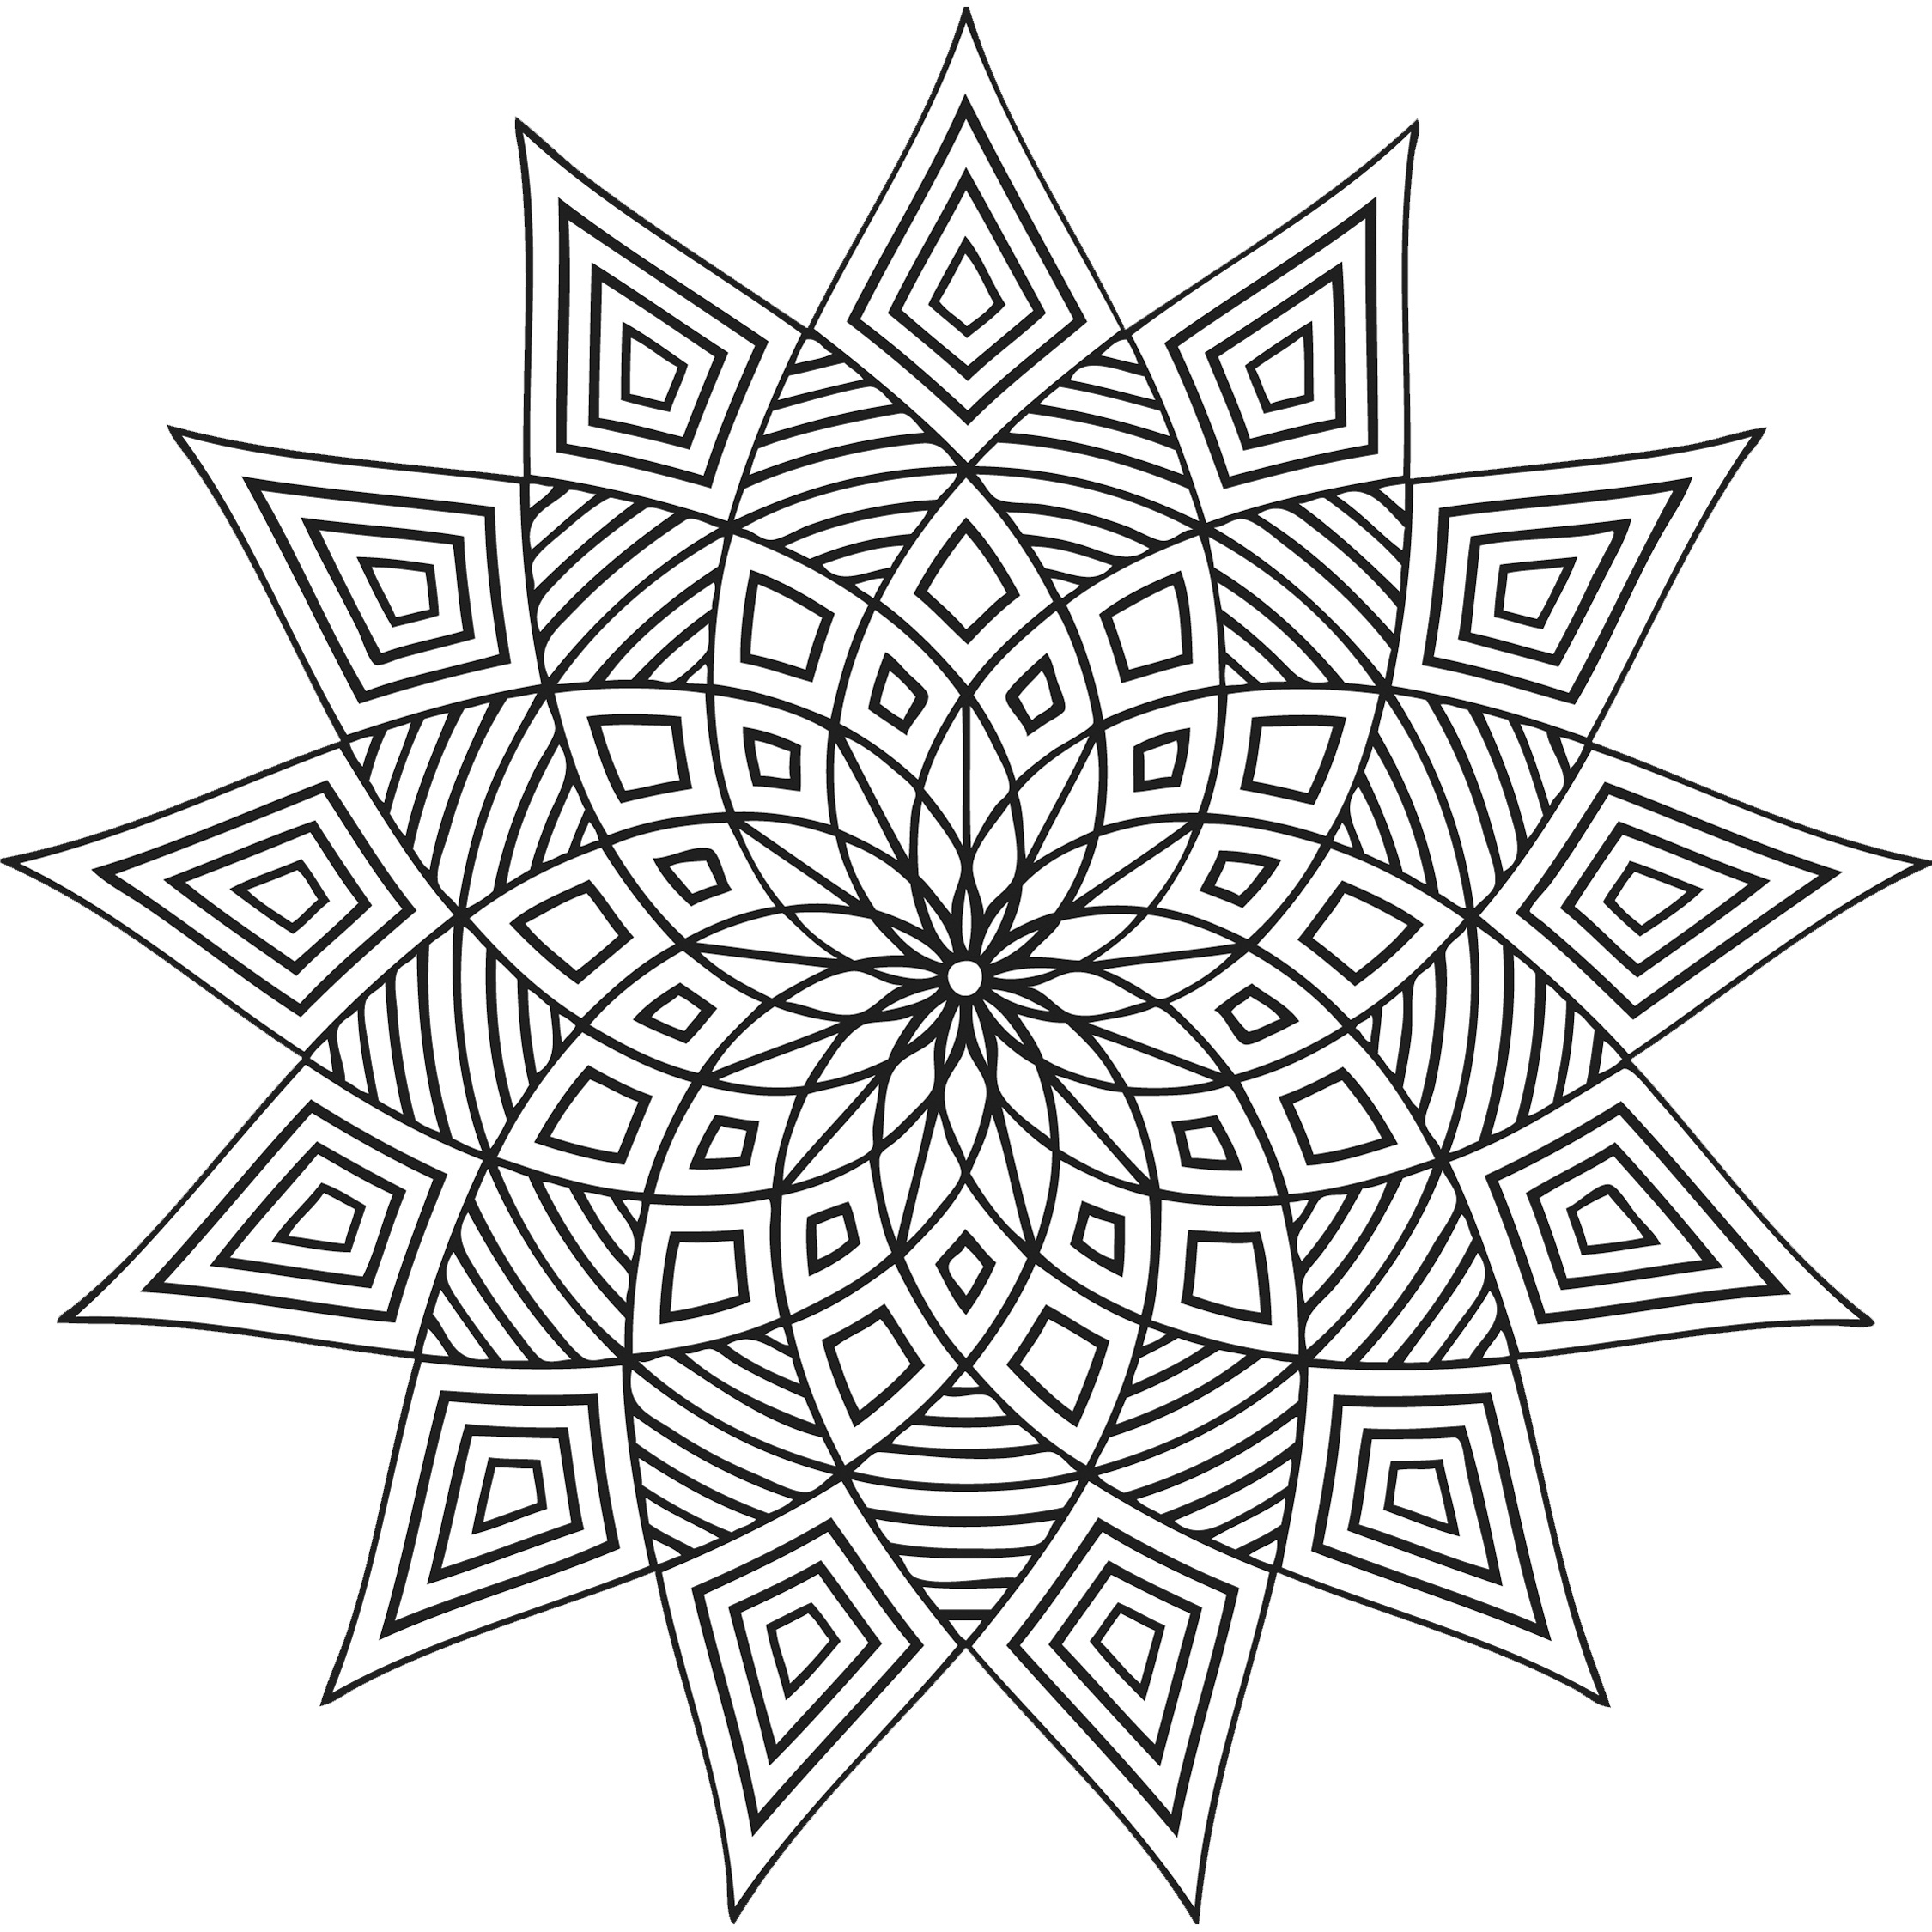 free coloring pages with designs free printable geometric coloring pages for adults free coloring designs pages with